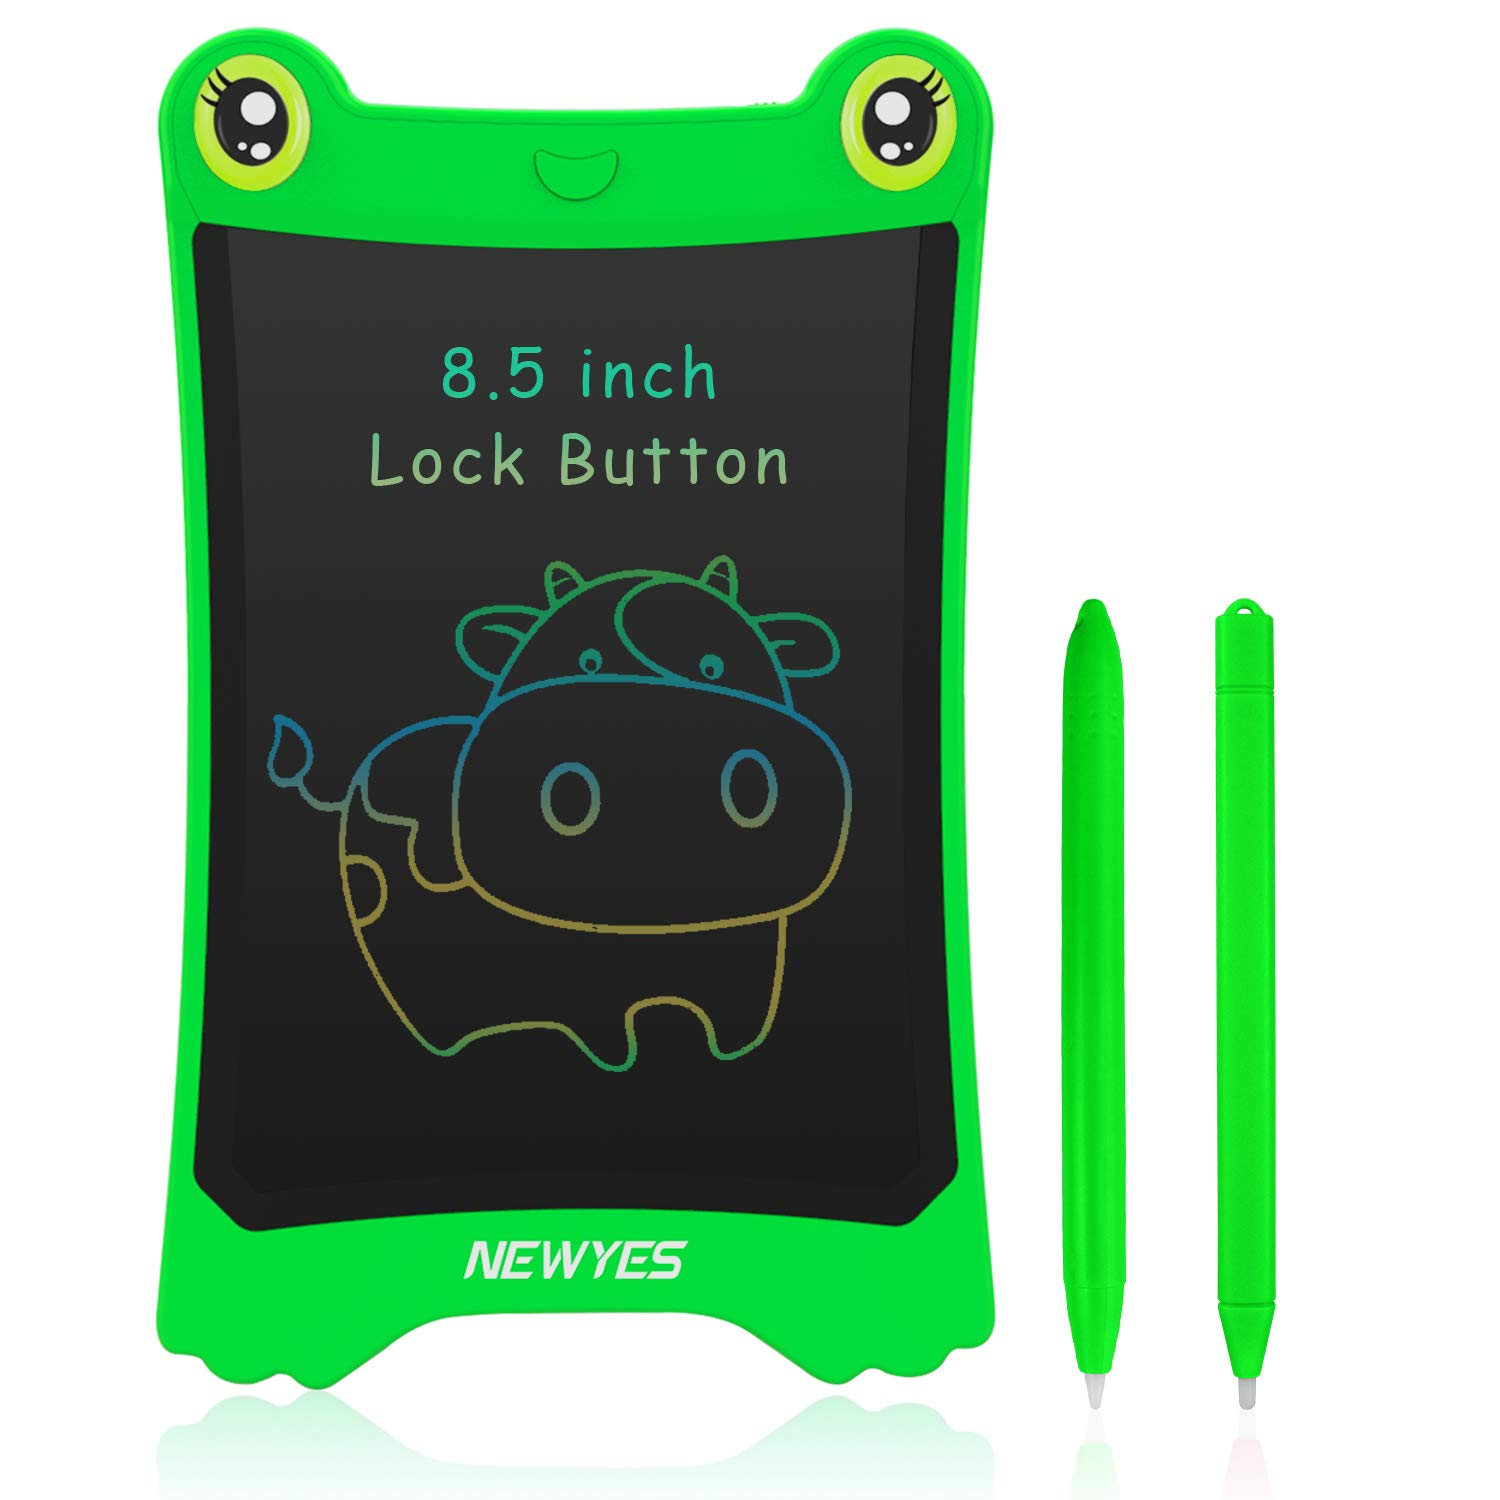 WOBEECO LCD Writing Tablet, 8.5 Inch Electronic Writing Board Doodle and Scribble Board for Kids (Green) by WOBEECO (Image #1)